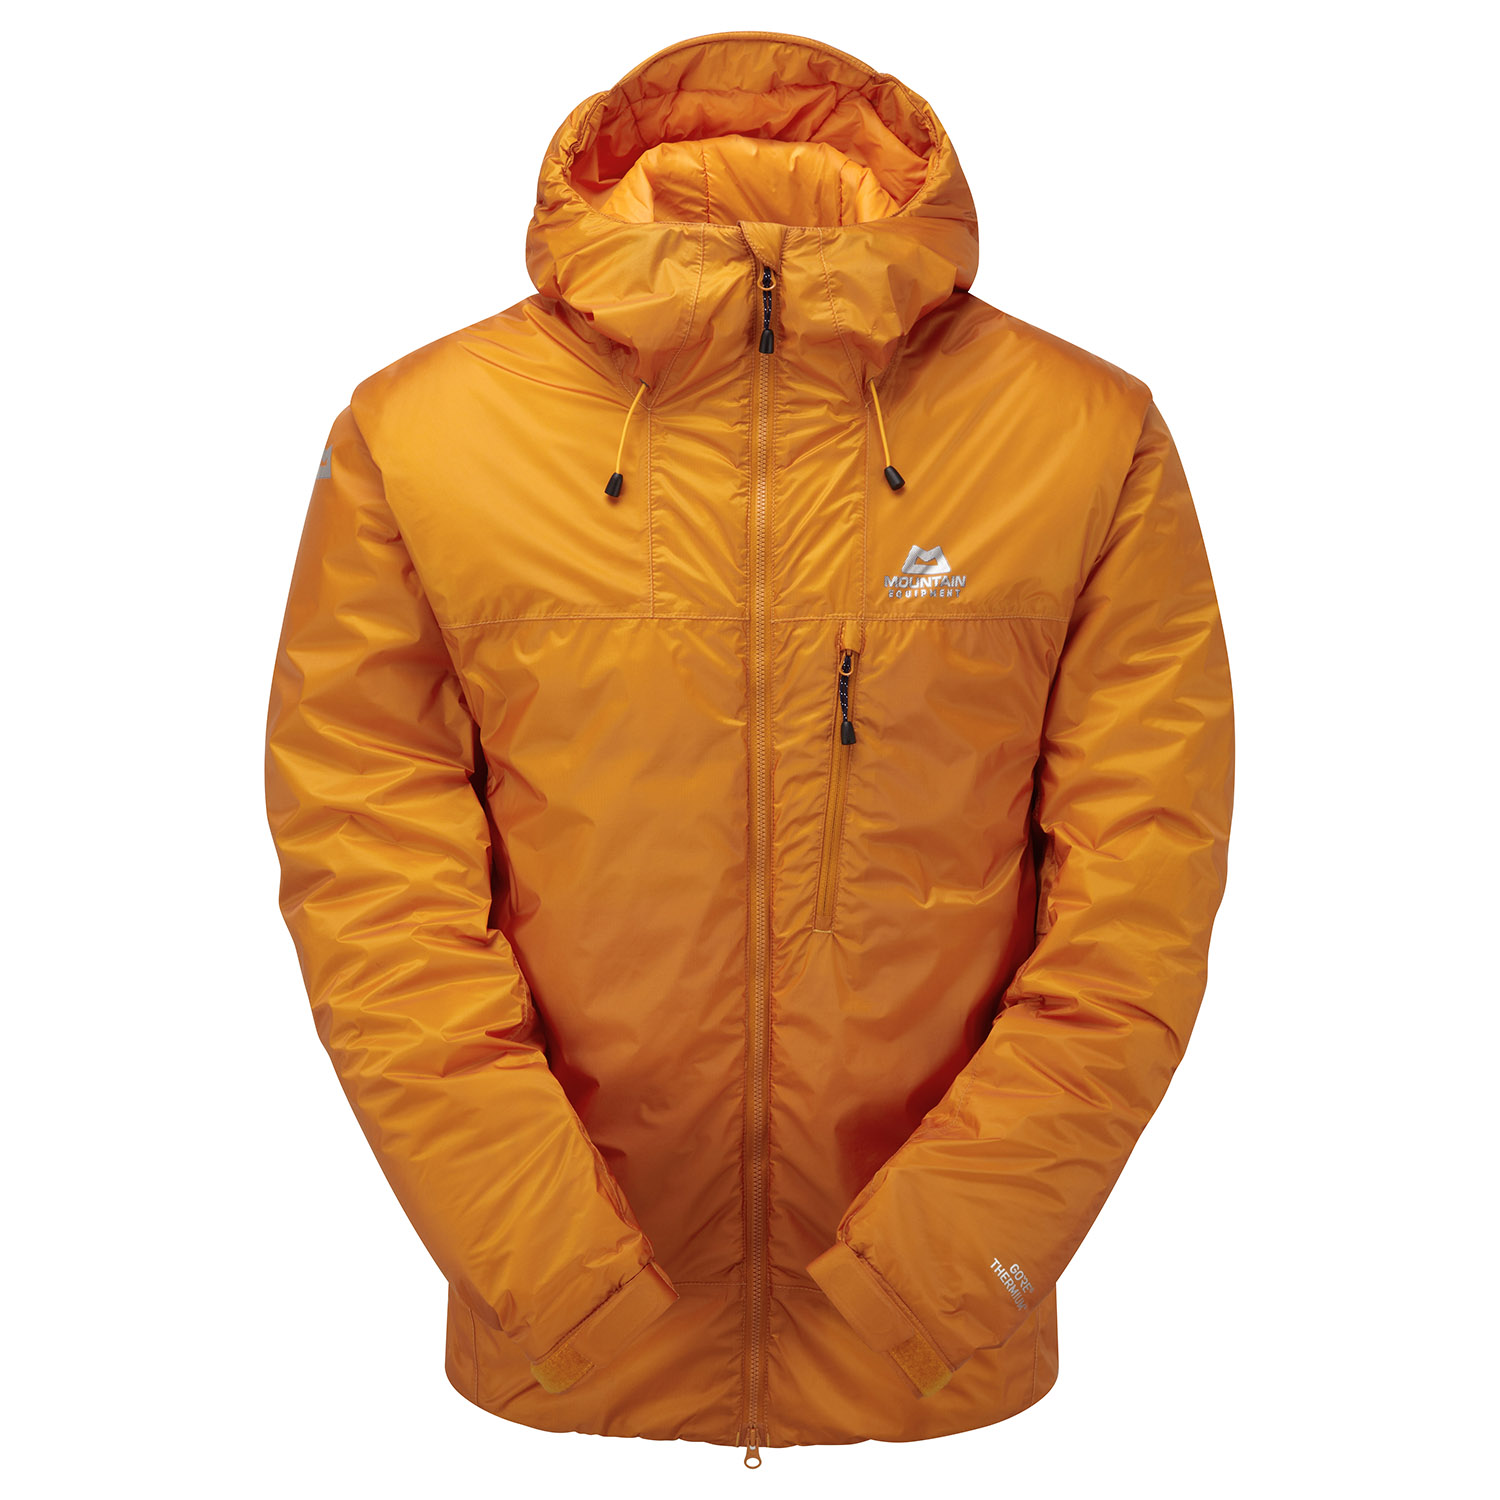 equipement mountain daunenjacke damen leicht equipement mountain mNnv8y0Ow